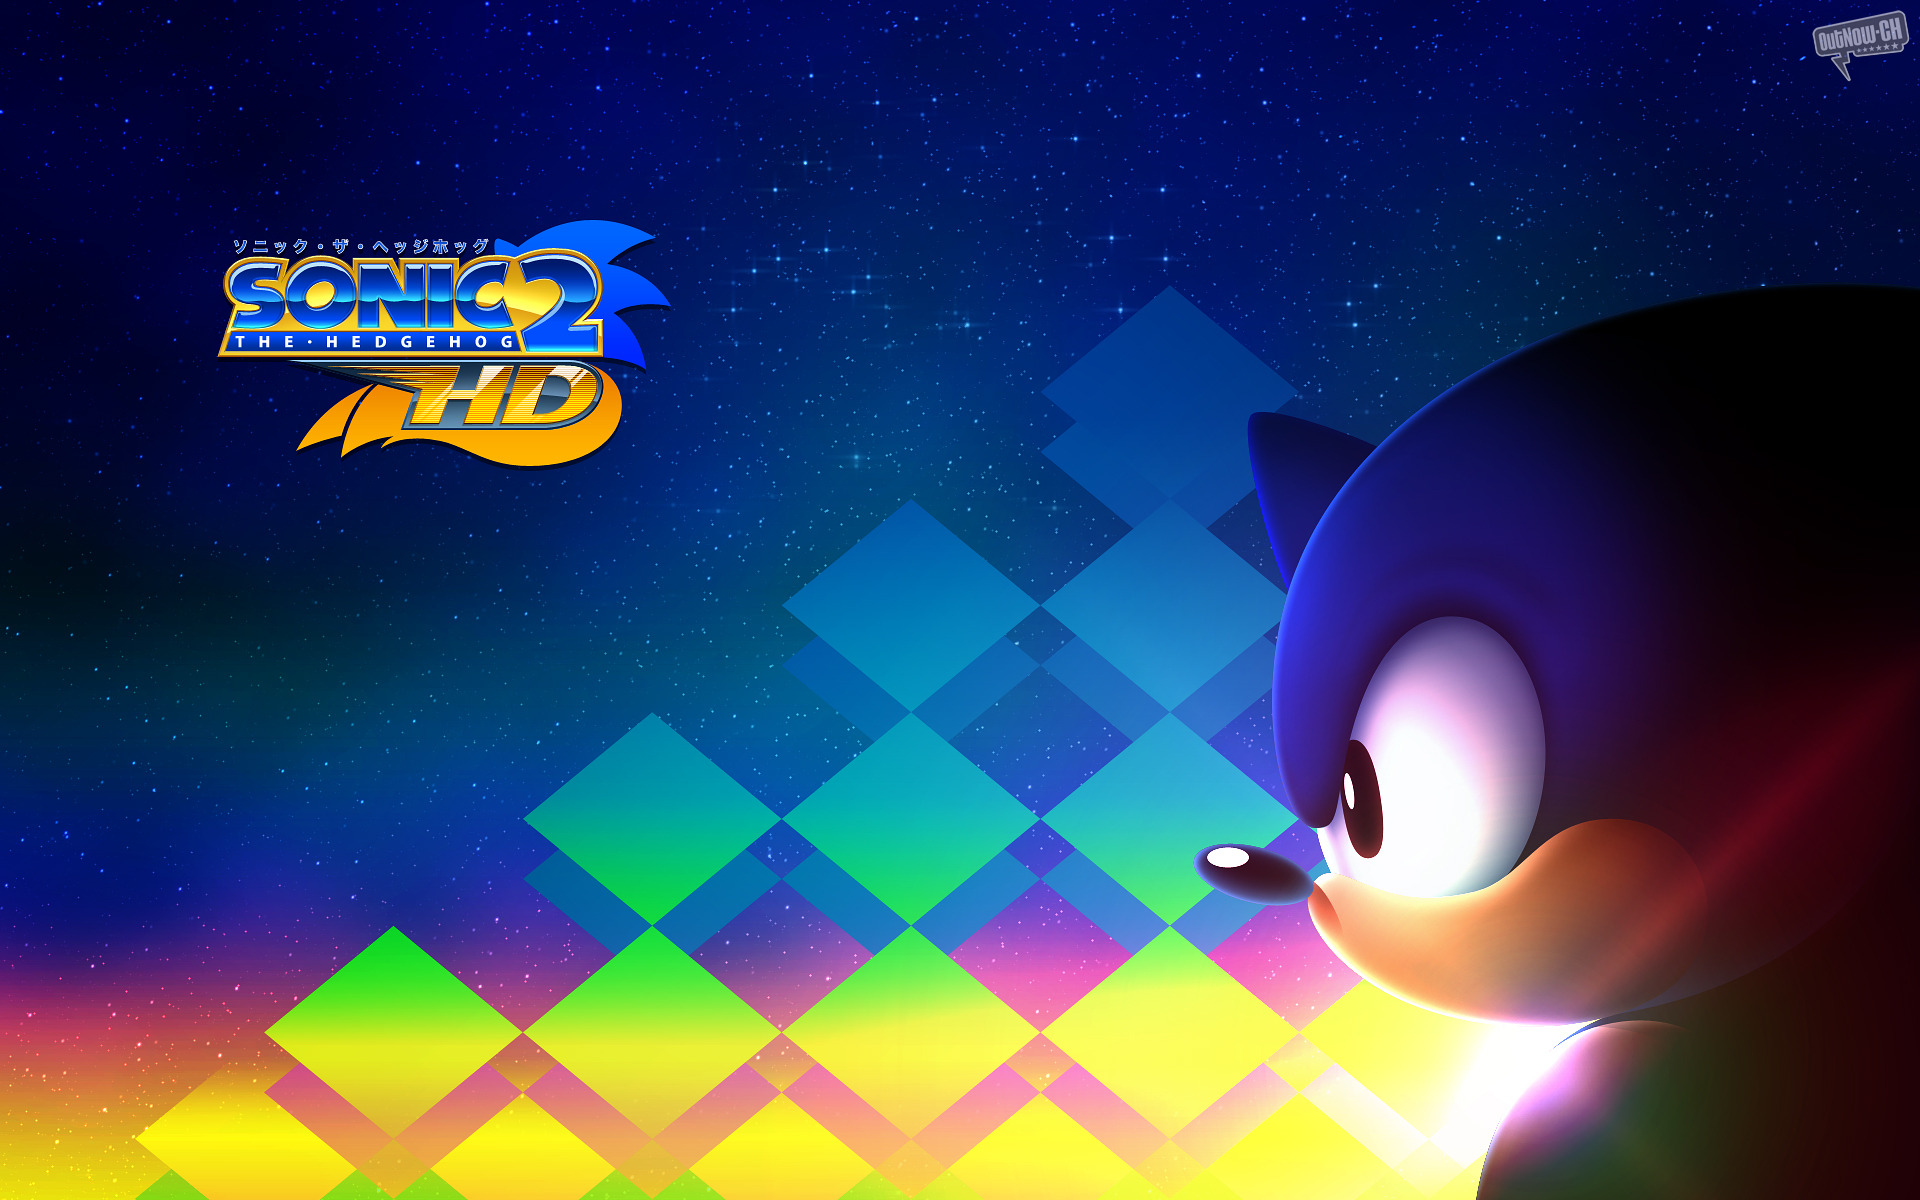 Gameboy Iphone Wallpaper Sonic 2 Hd Wallpapers Sonic 2 Hd Stock Photos